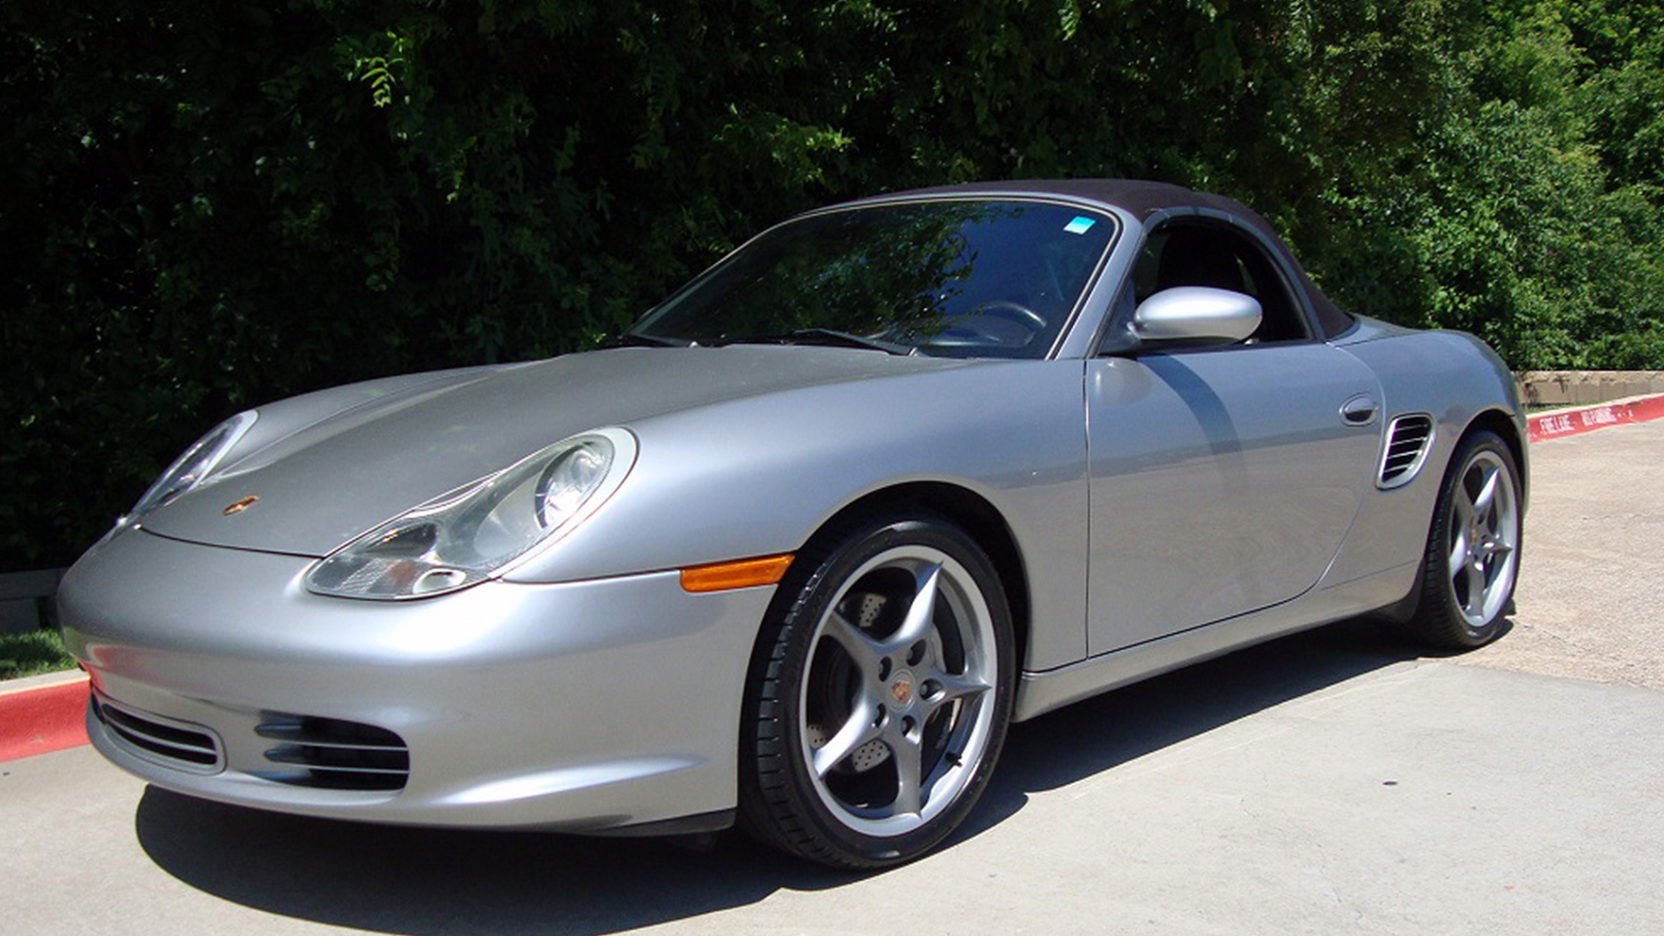 hight resolution of 2004 porsche boxster s special edition 1 full screen